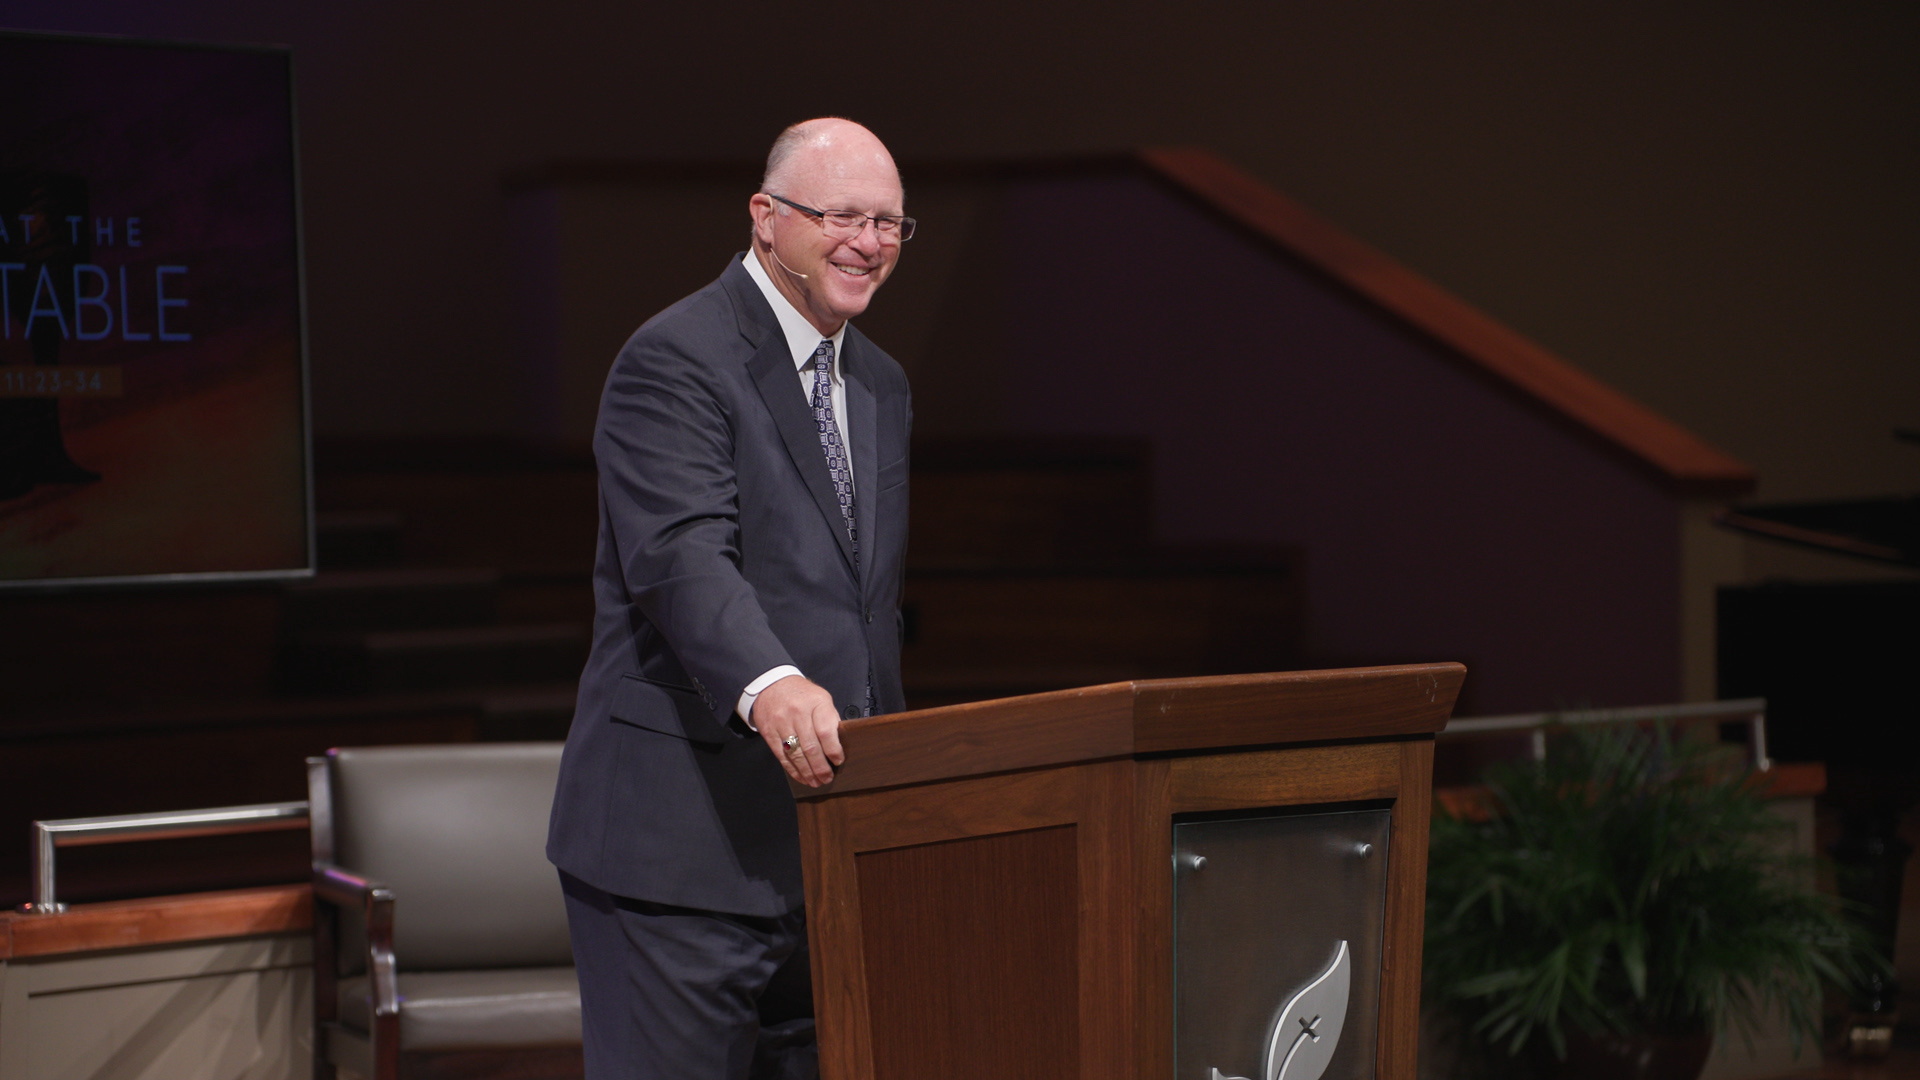 Pastor Paul Chappell: Reunion at the Lord's Table